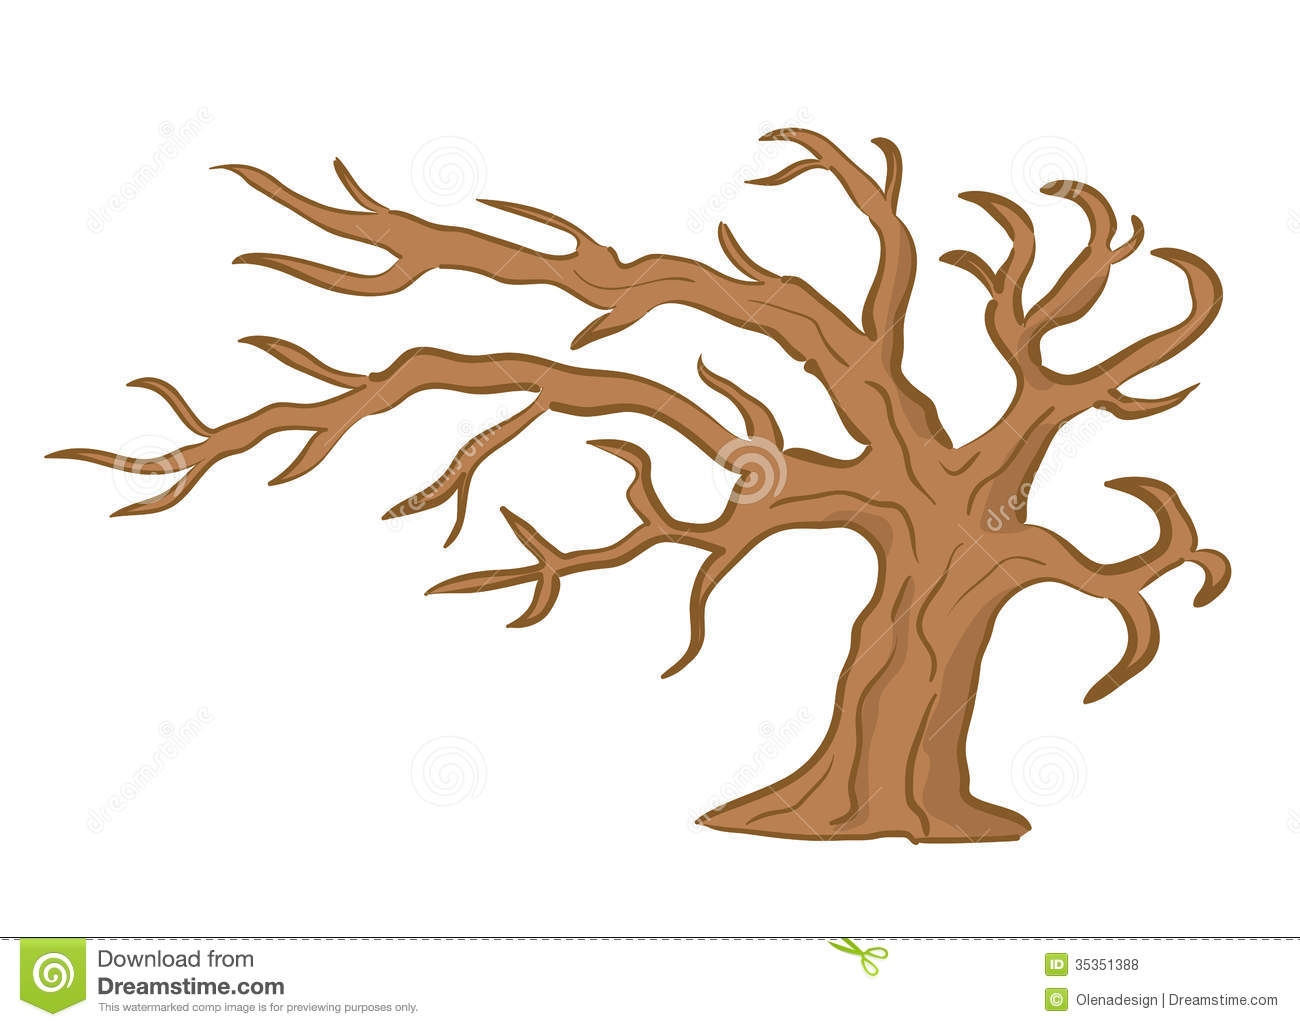 Branch clipart tree log Tree tree clipart clipart Old